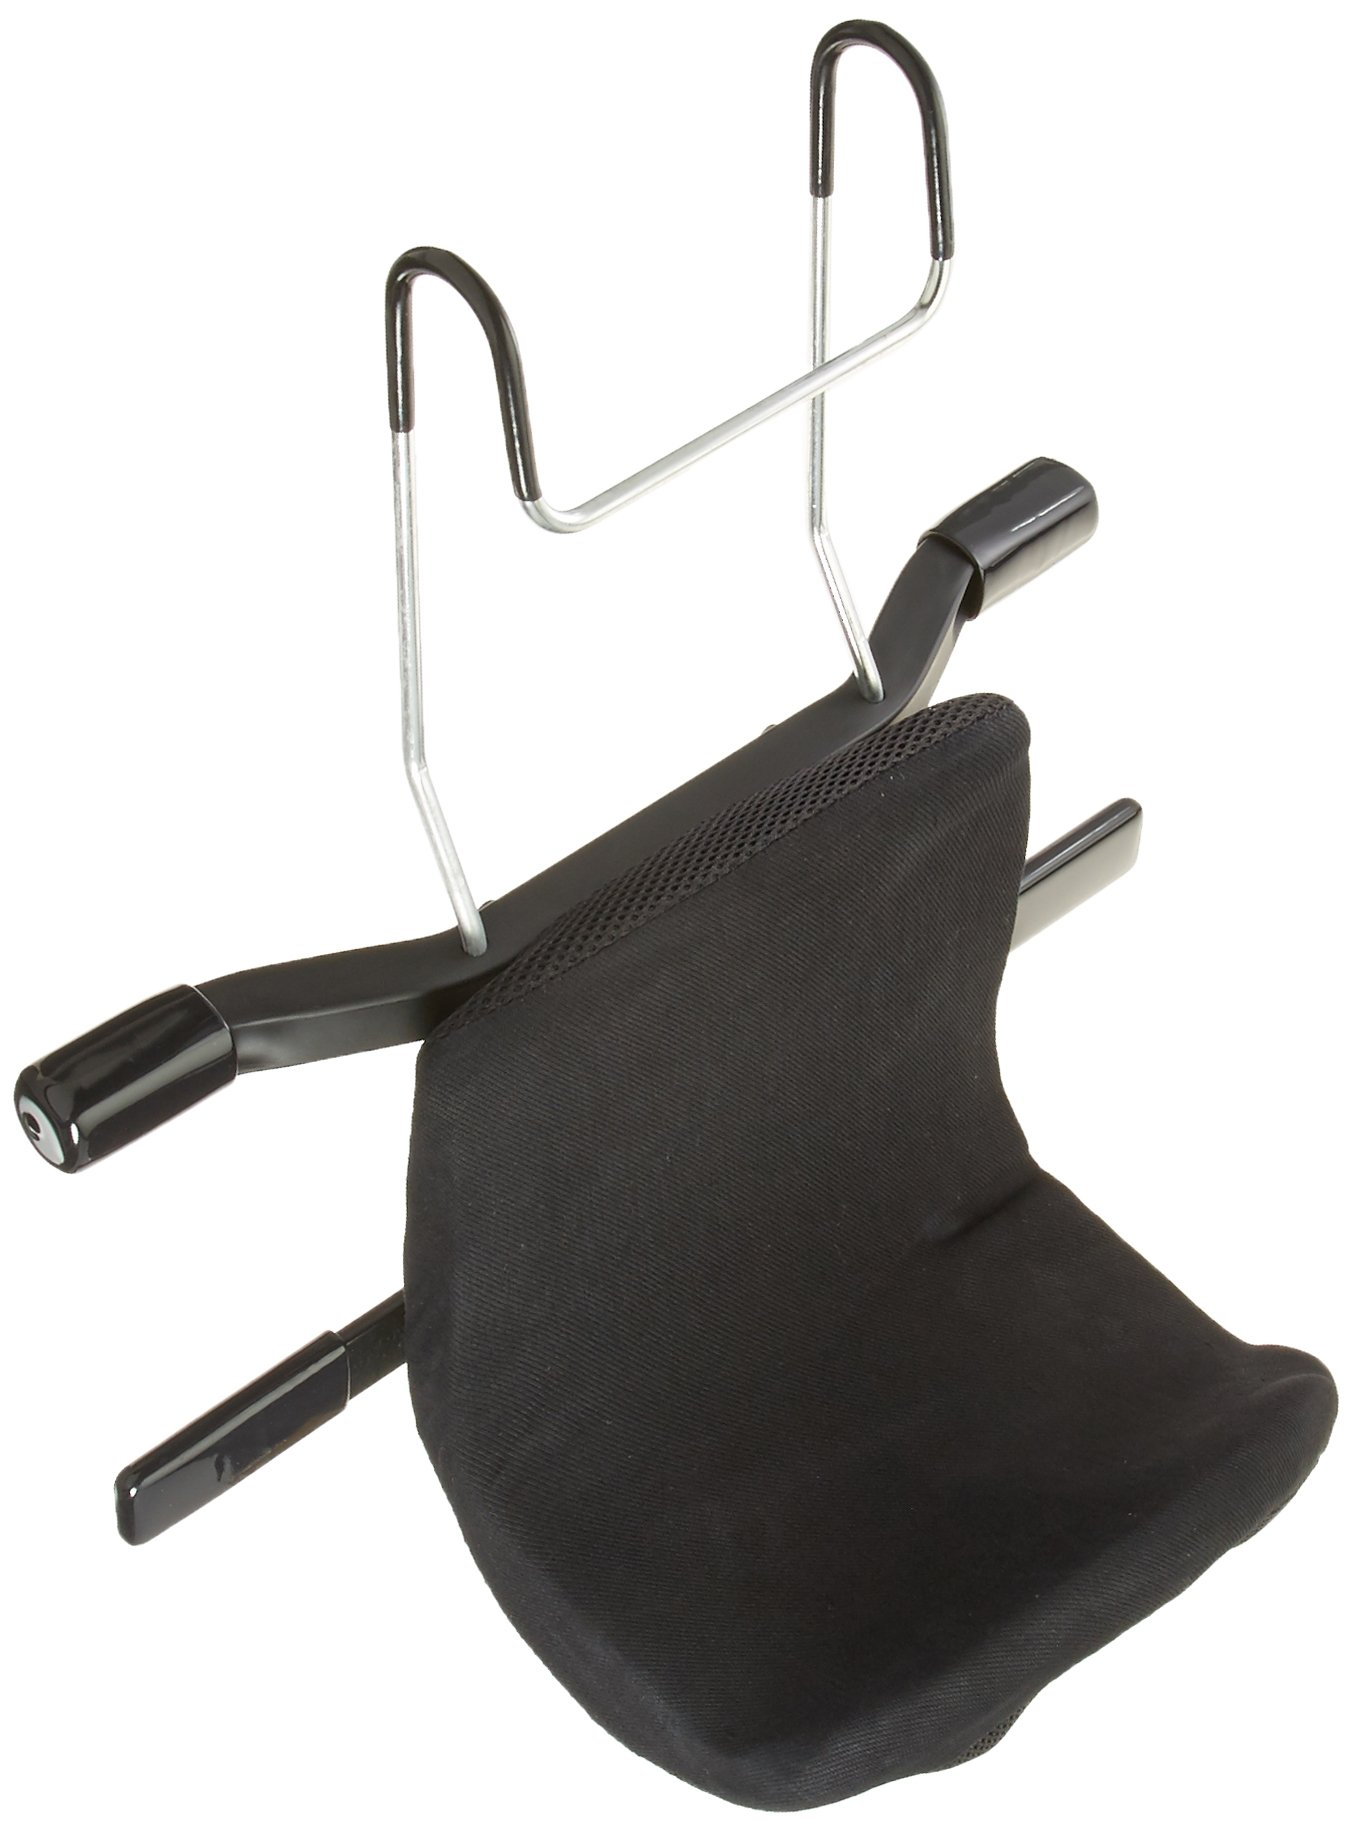 Sammons Preston The Kneeler, Hanging Knee Sling Fits Any Walker, Comfortable Adjustable Knee Cushion for Standard Walkers, Lifts Leg for Complete Non Weight Bearing Patients